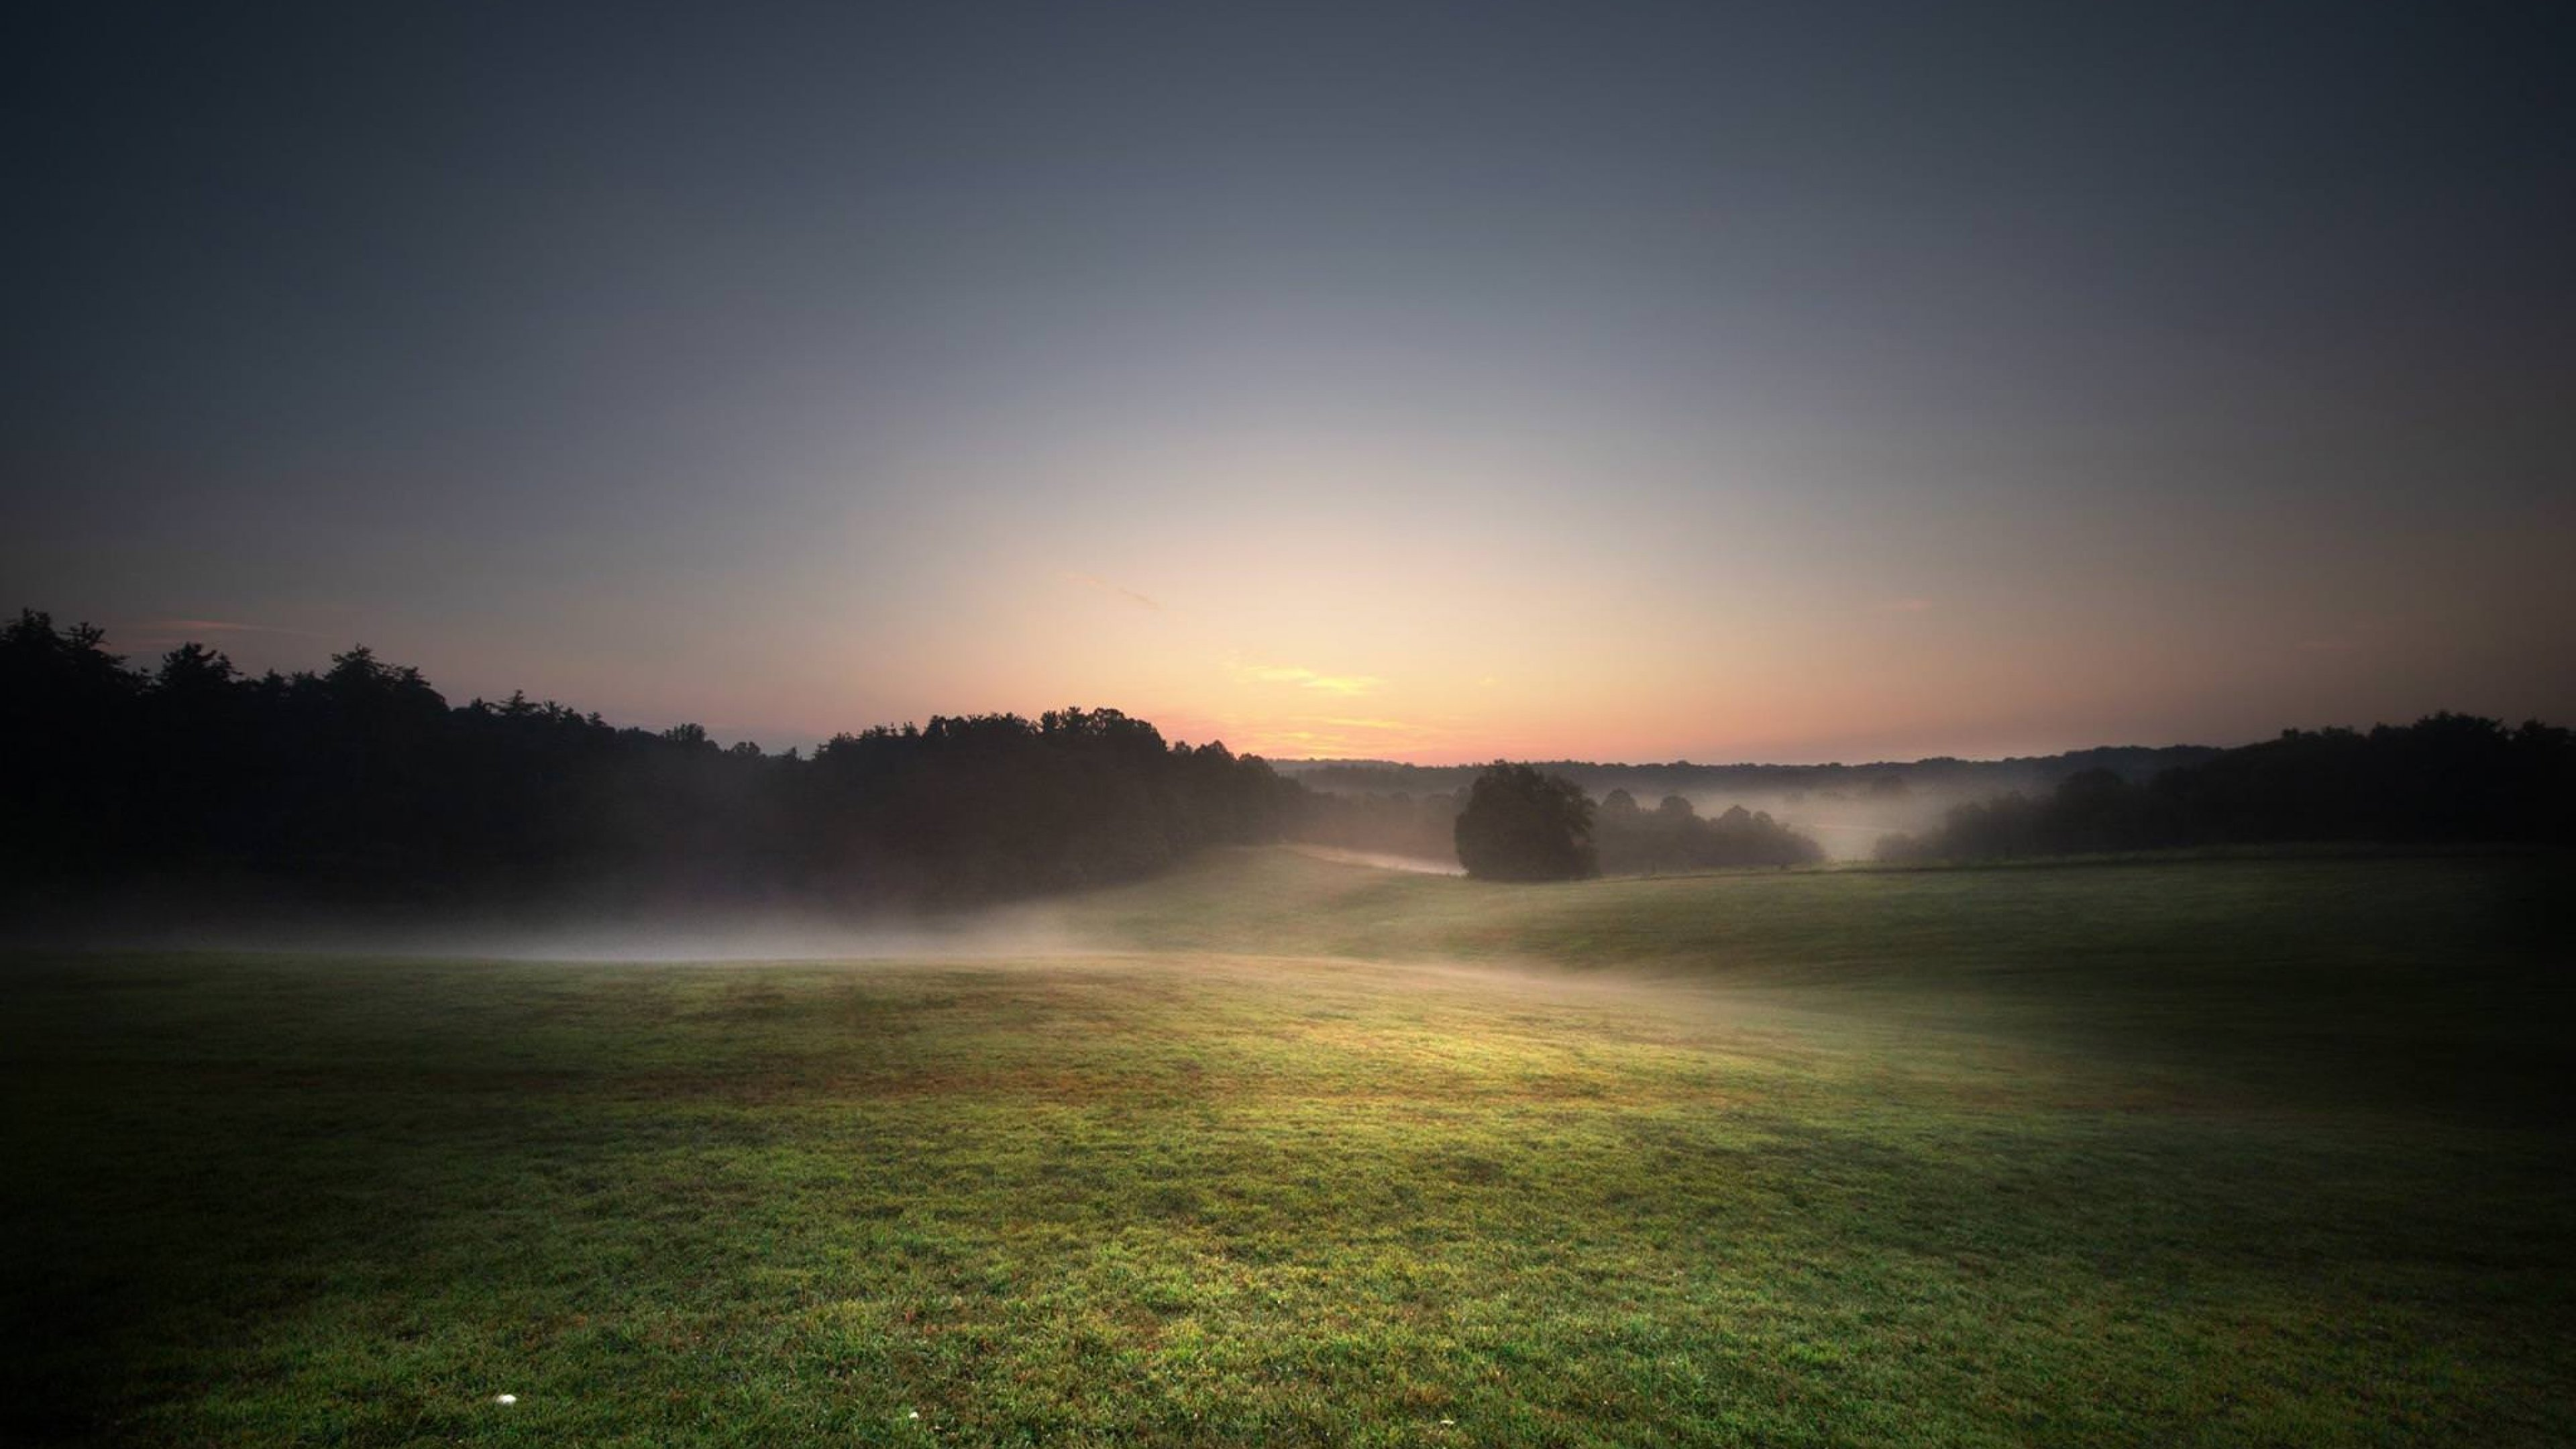 The sun low in the horizon with fog over the pairie at Cuyahoga Valley National Park